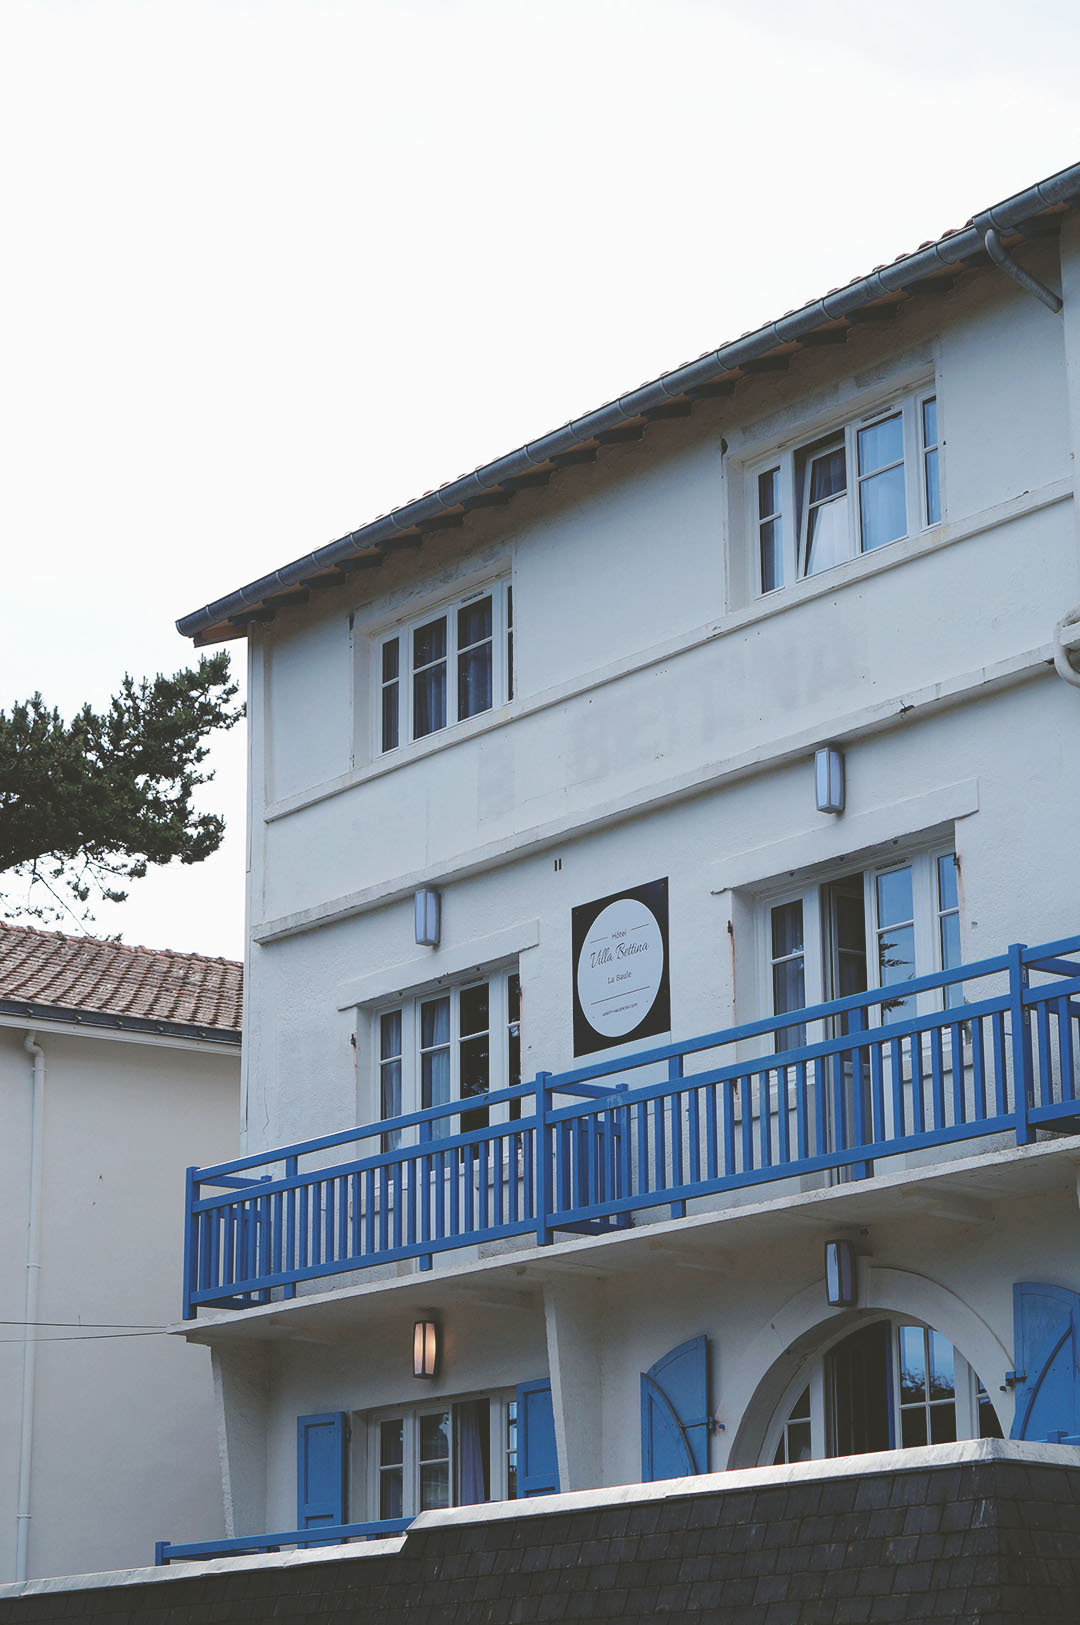 6_hotel_villa_bettina_la_baule.